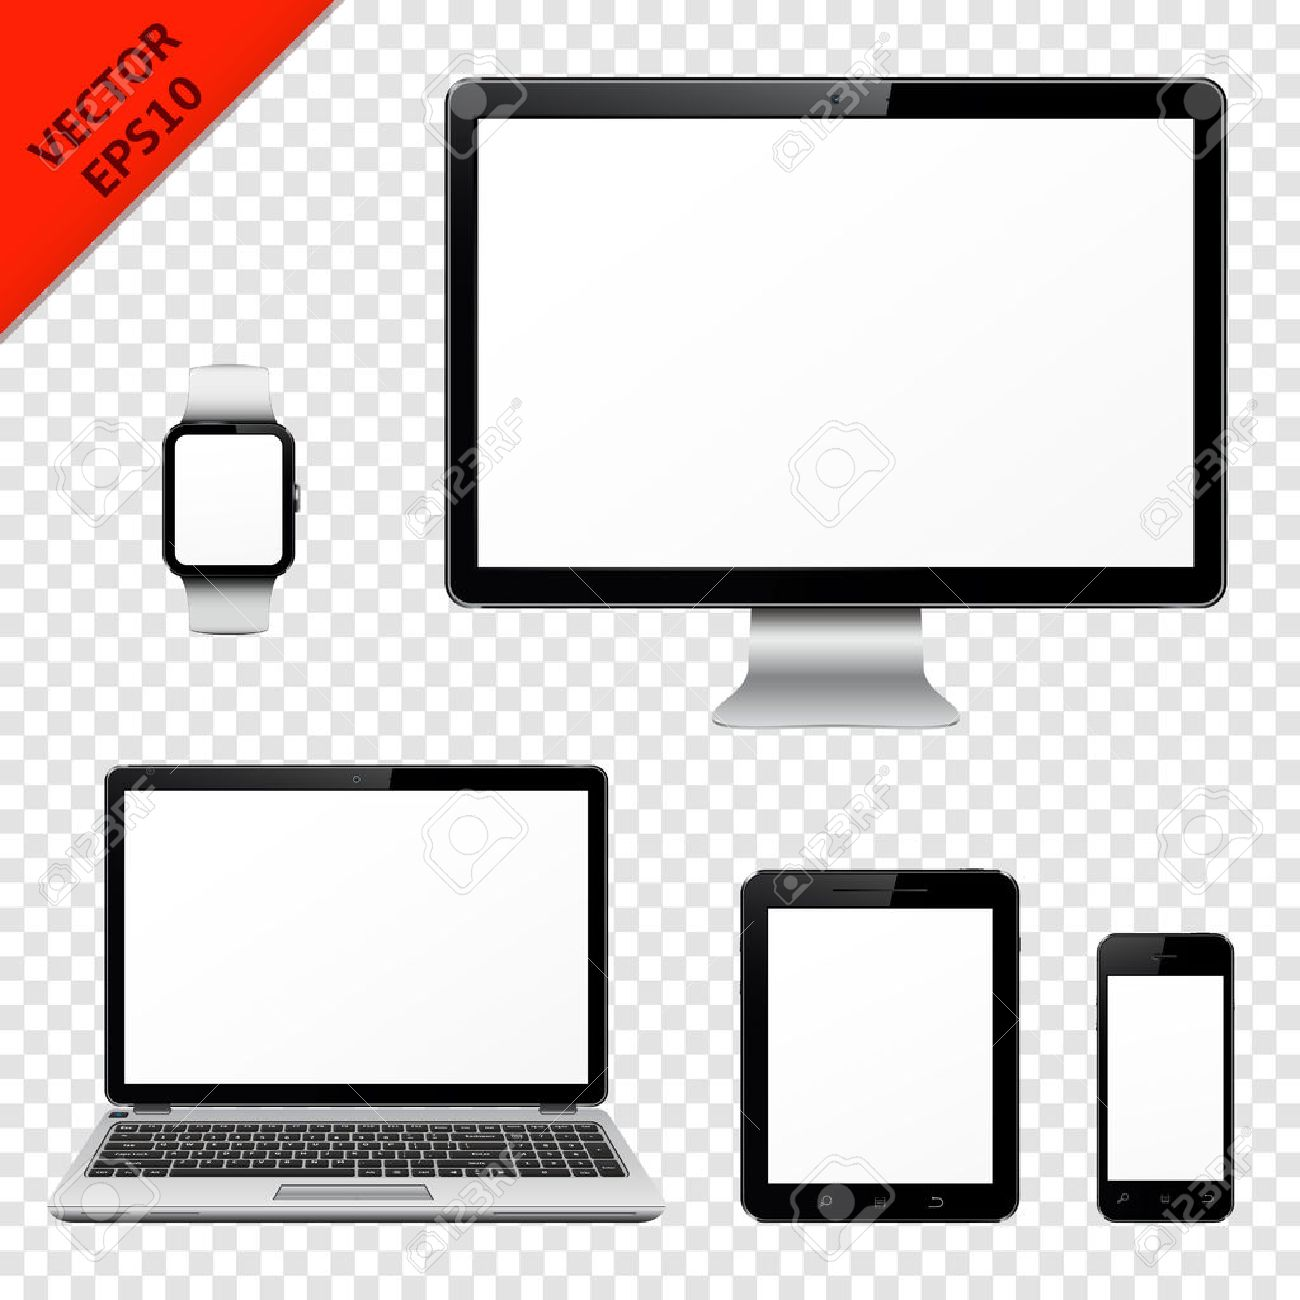 Computer monitor, laptop, tablet pc, mobile phone and smart watch isolated on transparent background - 58047088